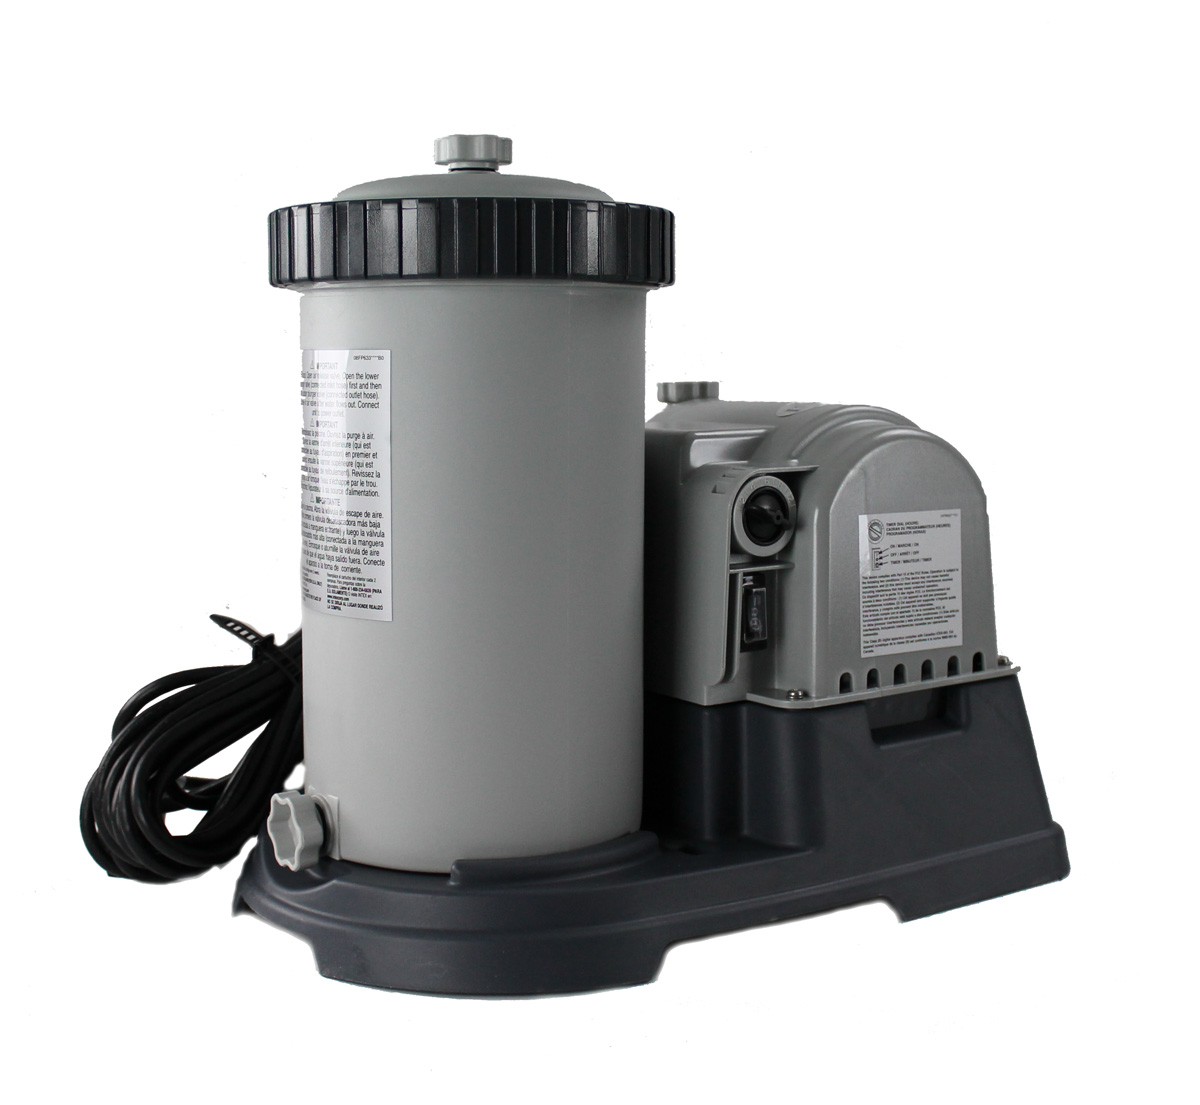 Intex 2500 GPH Filter Pump w/ Timer & GFCI